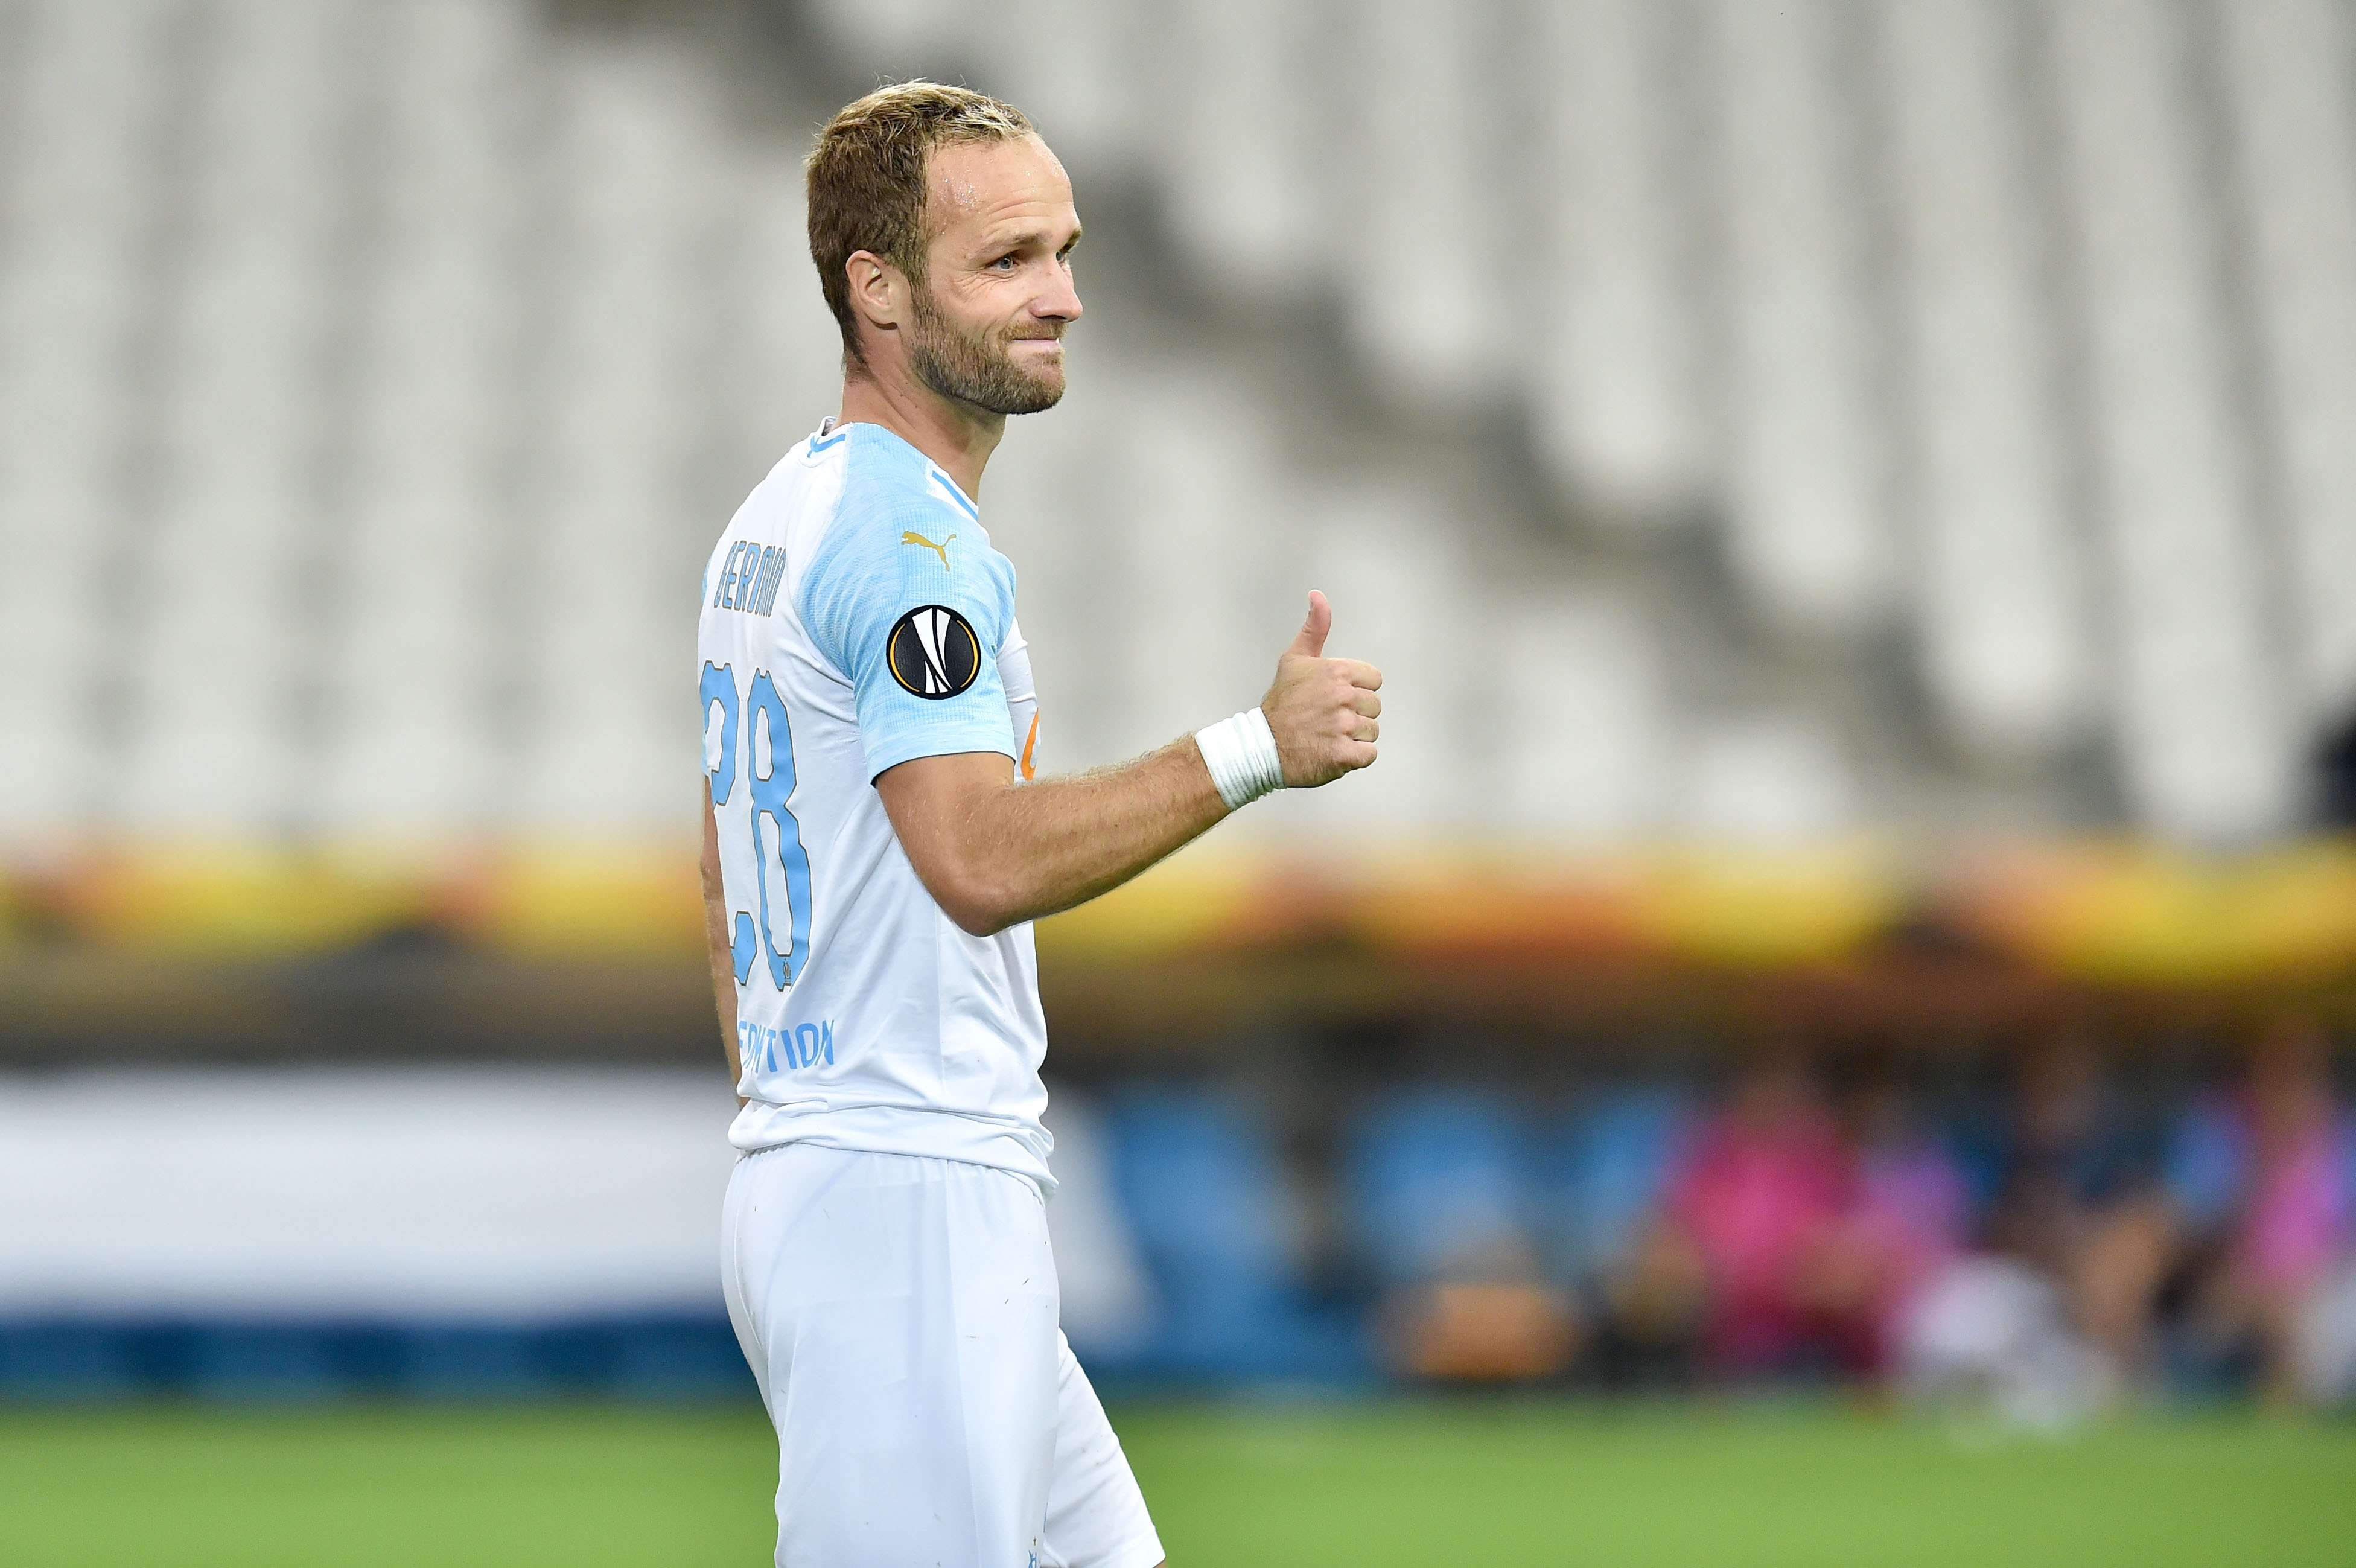 Football - Transferts - Le journal du mercato : Germain vise Monaco, le PSG a flashé sur Allan